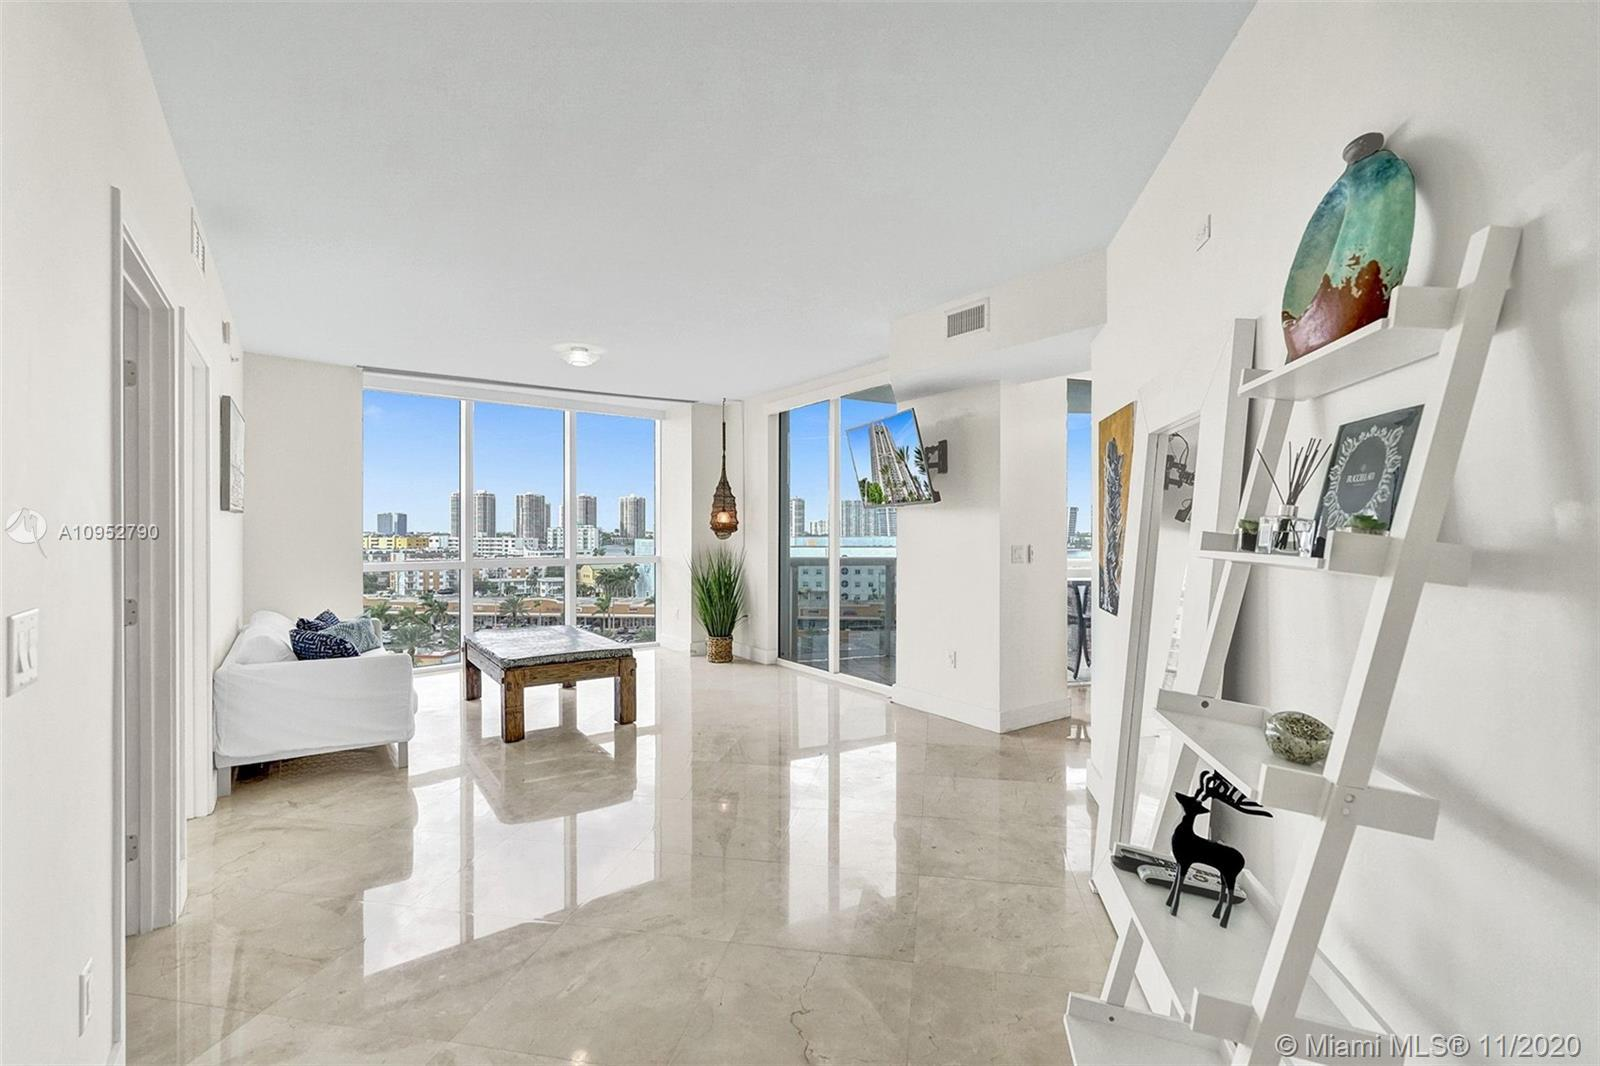 GREAT INVESTMENT - PRICE REDUCED. Luxurious 2 Bedroom / 2 Bathroom in Trump Royale. Stainless steel